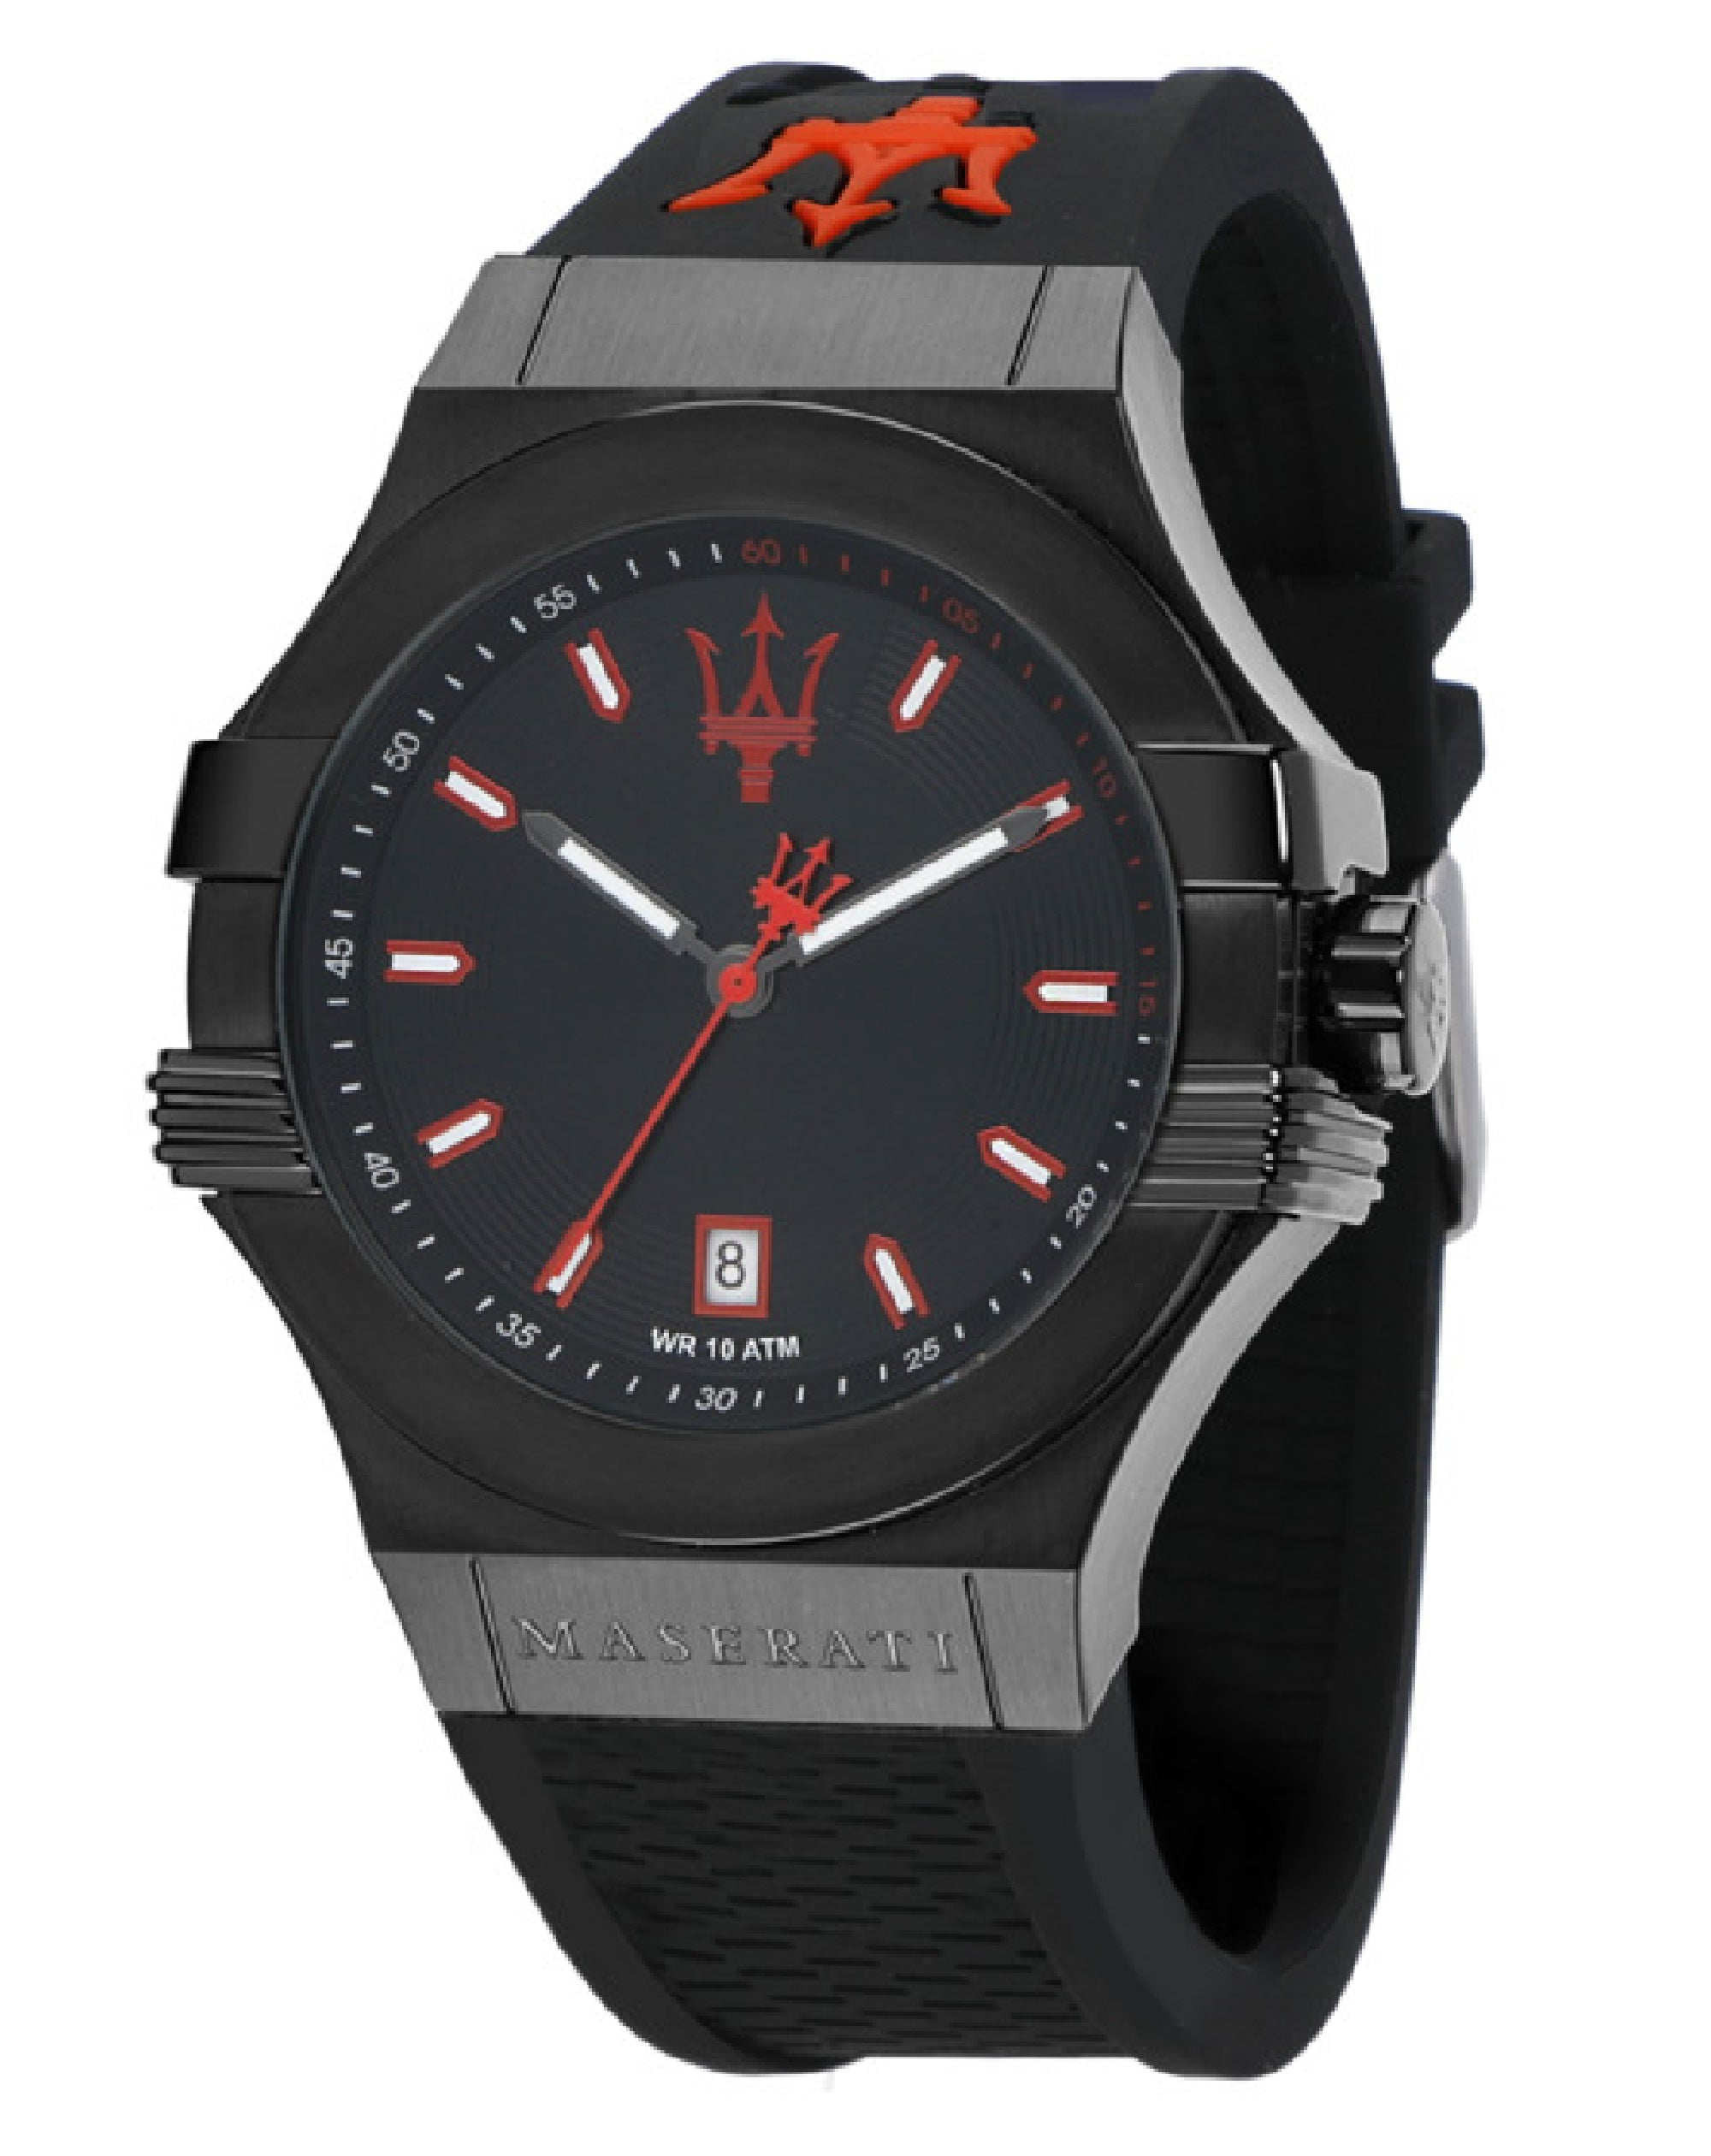 Potenza Black Rubber Watch, R8851108020